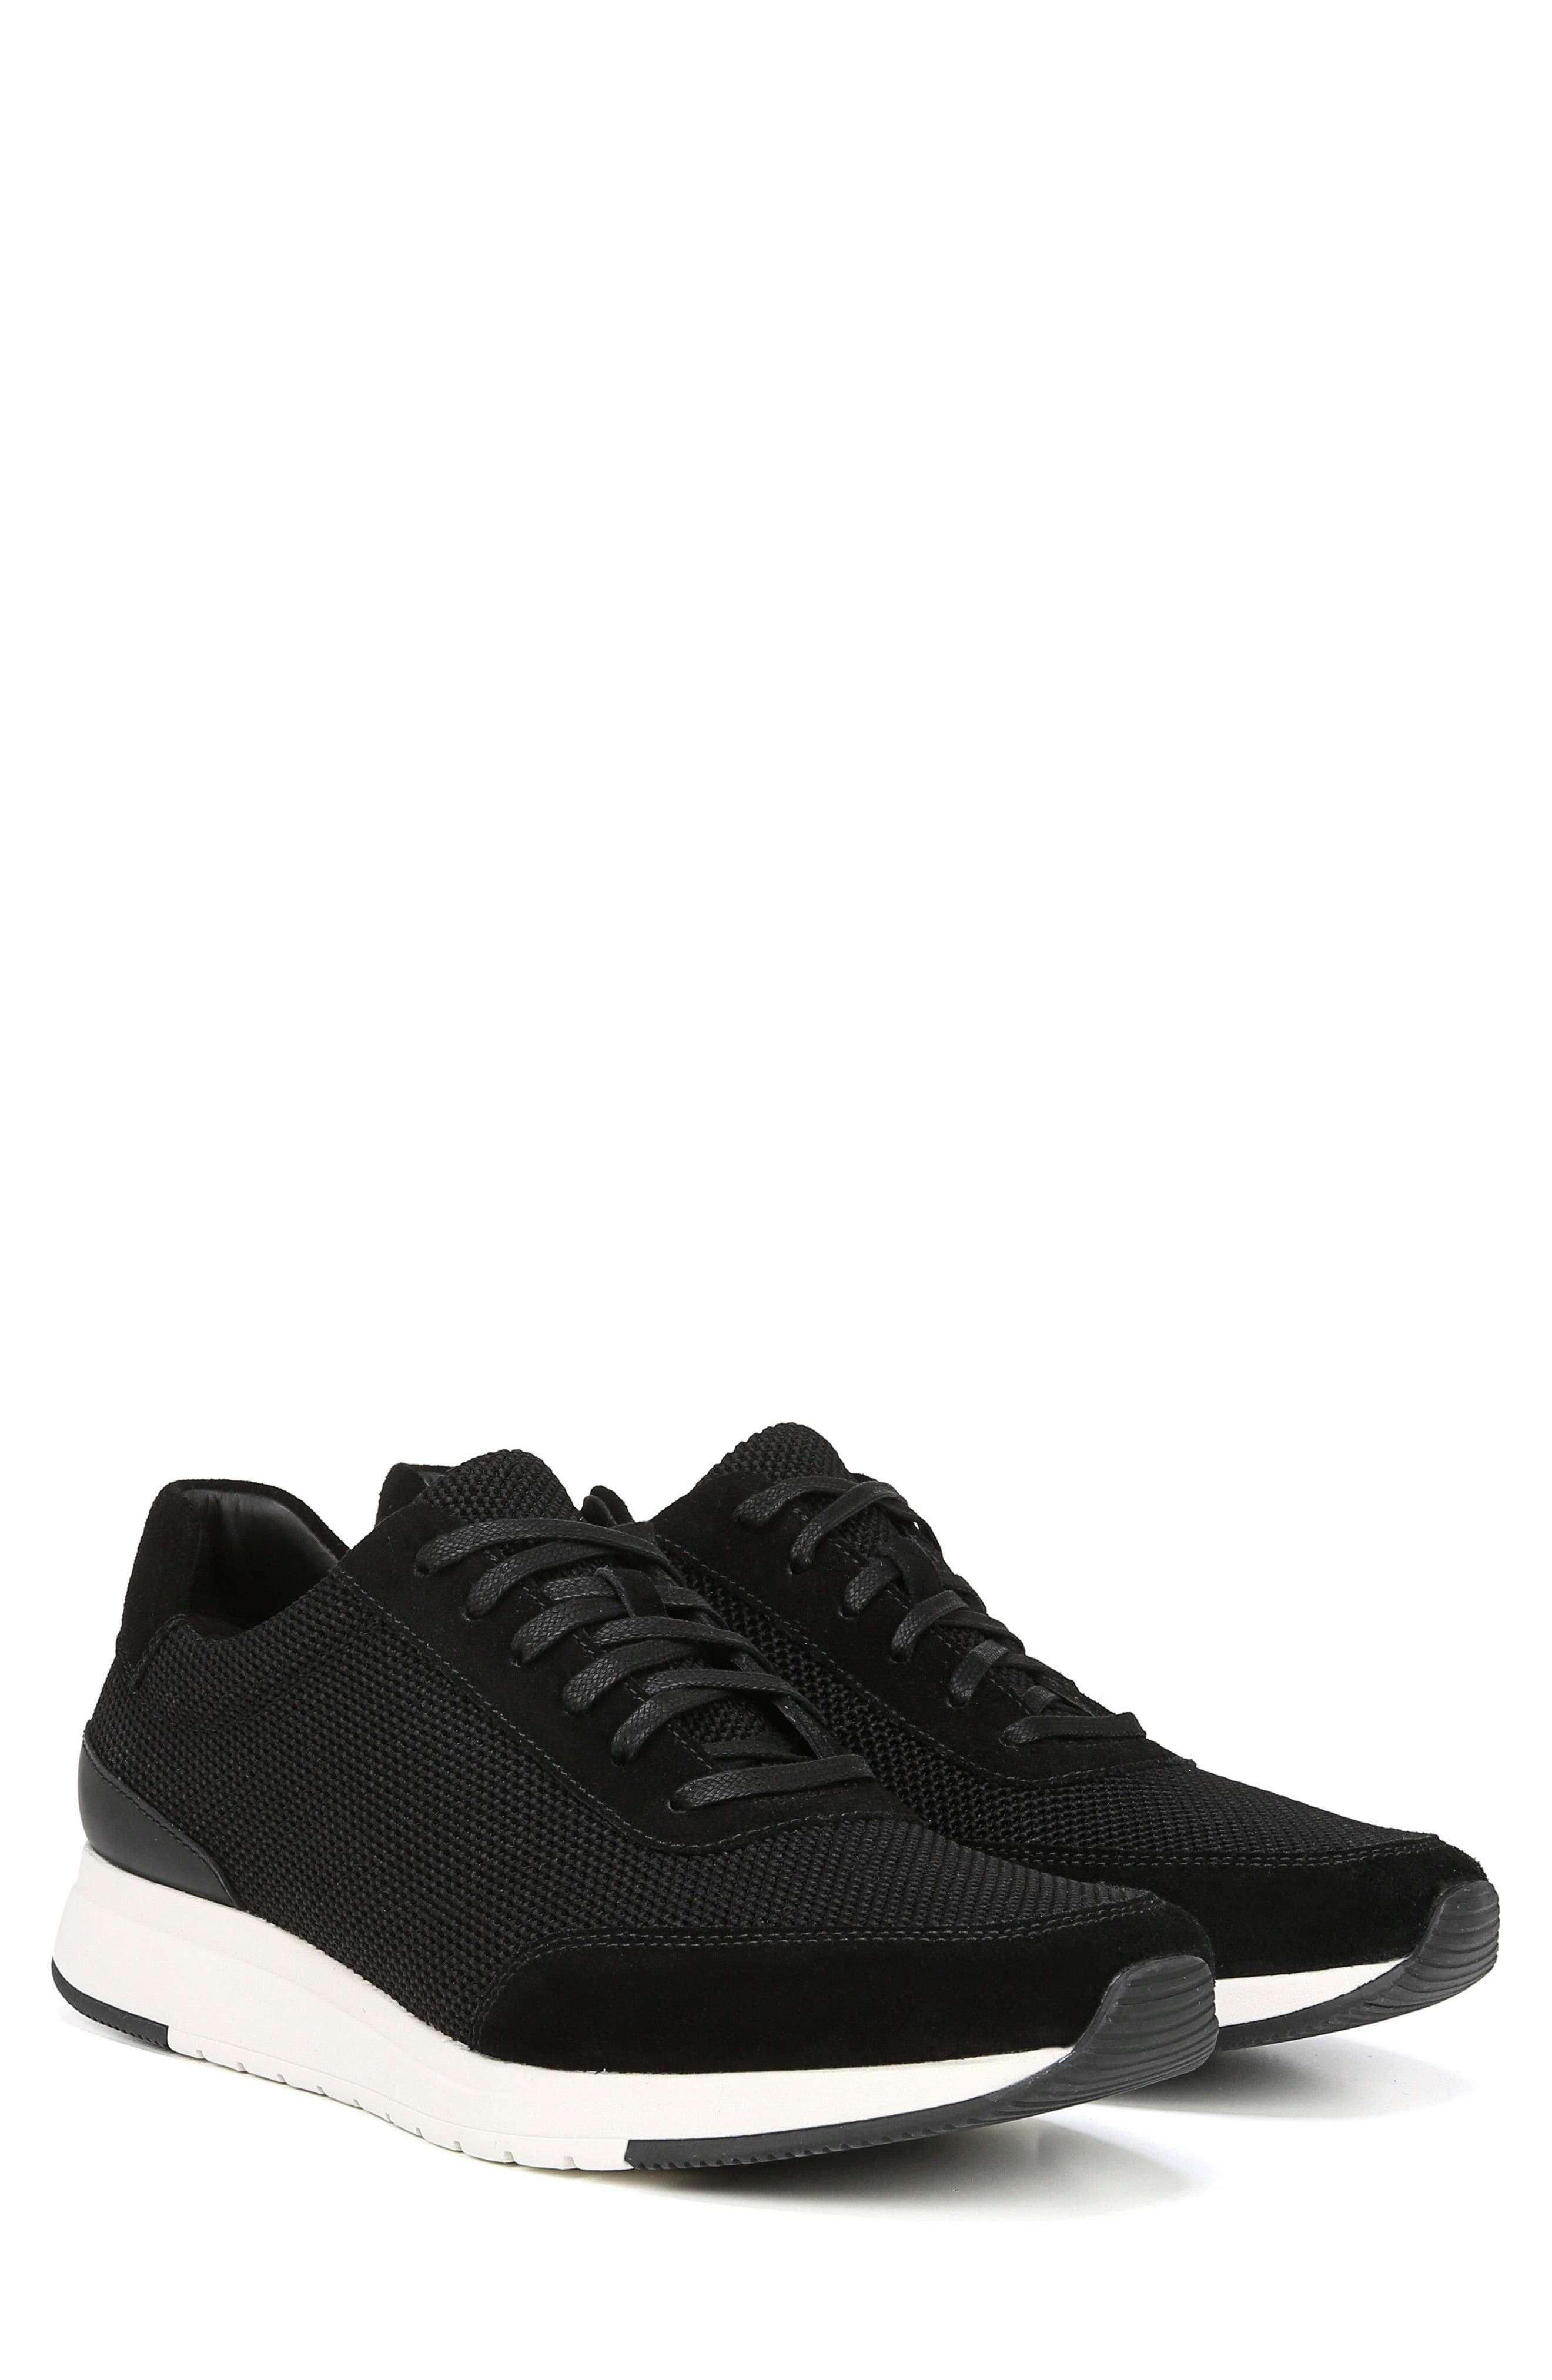 Payton Mesh Sneaker,                             Alternate thumbnail 8, color,                             BLACK